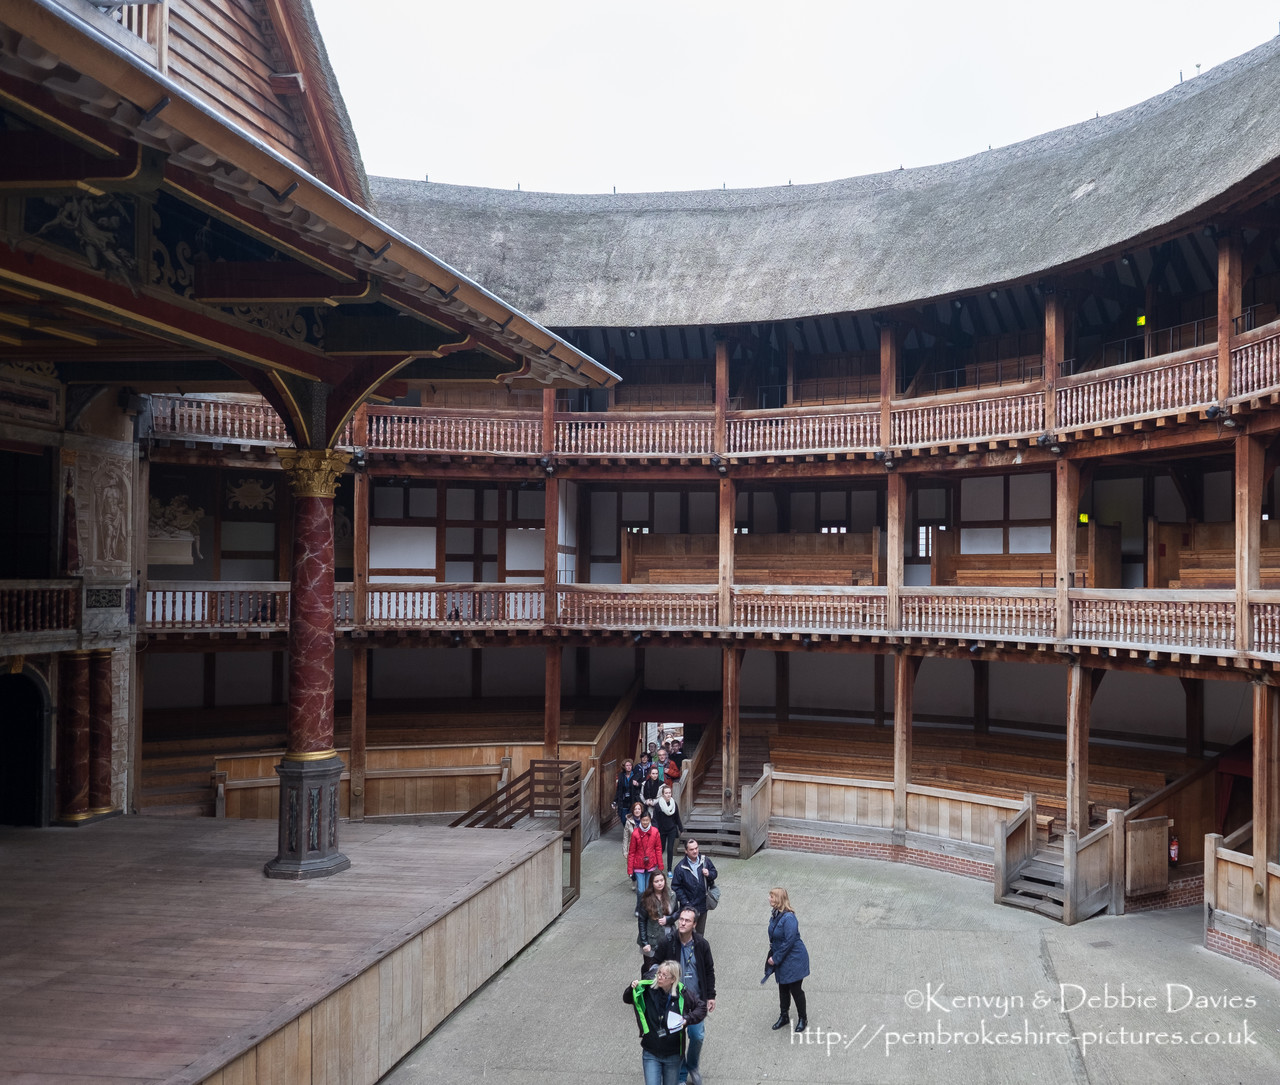 Opened in 1997, Shakespeare's Globe is a reconstruction of the original Glove Theatre built in 1599.